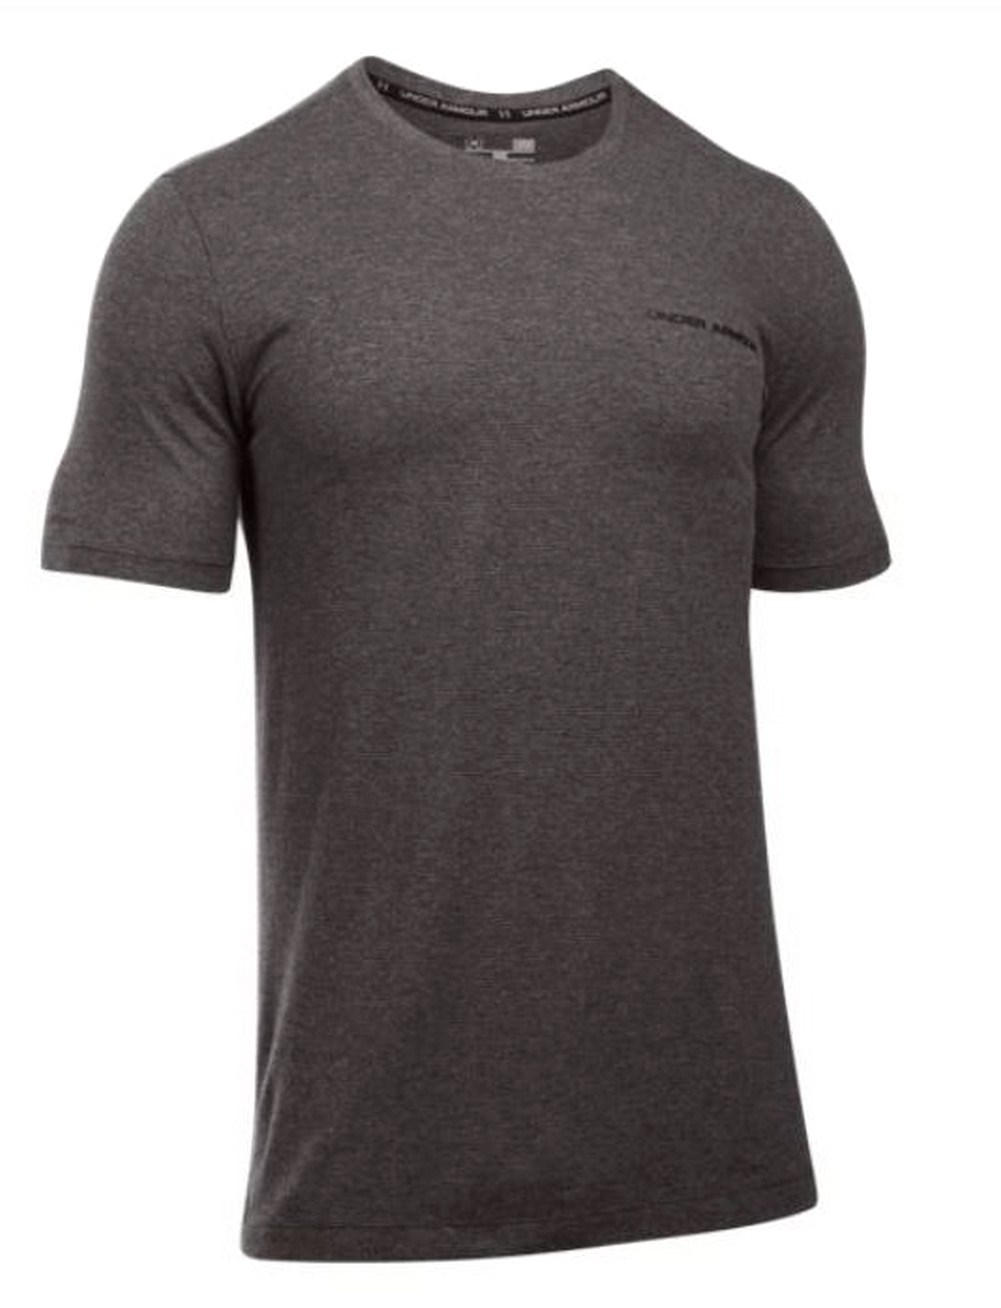 1277085M Under Armour Men/'s Charged Cotton Short Sleeve Shirt